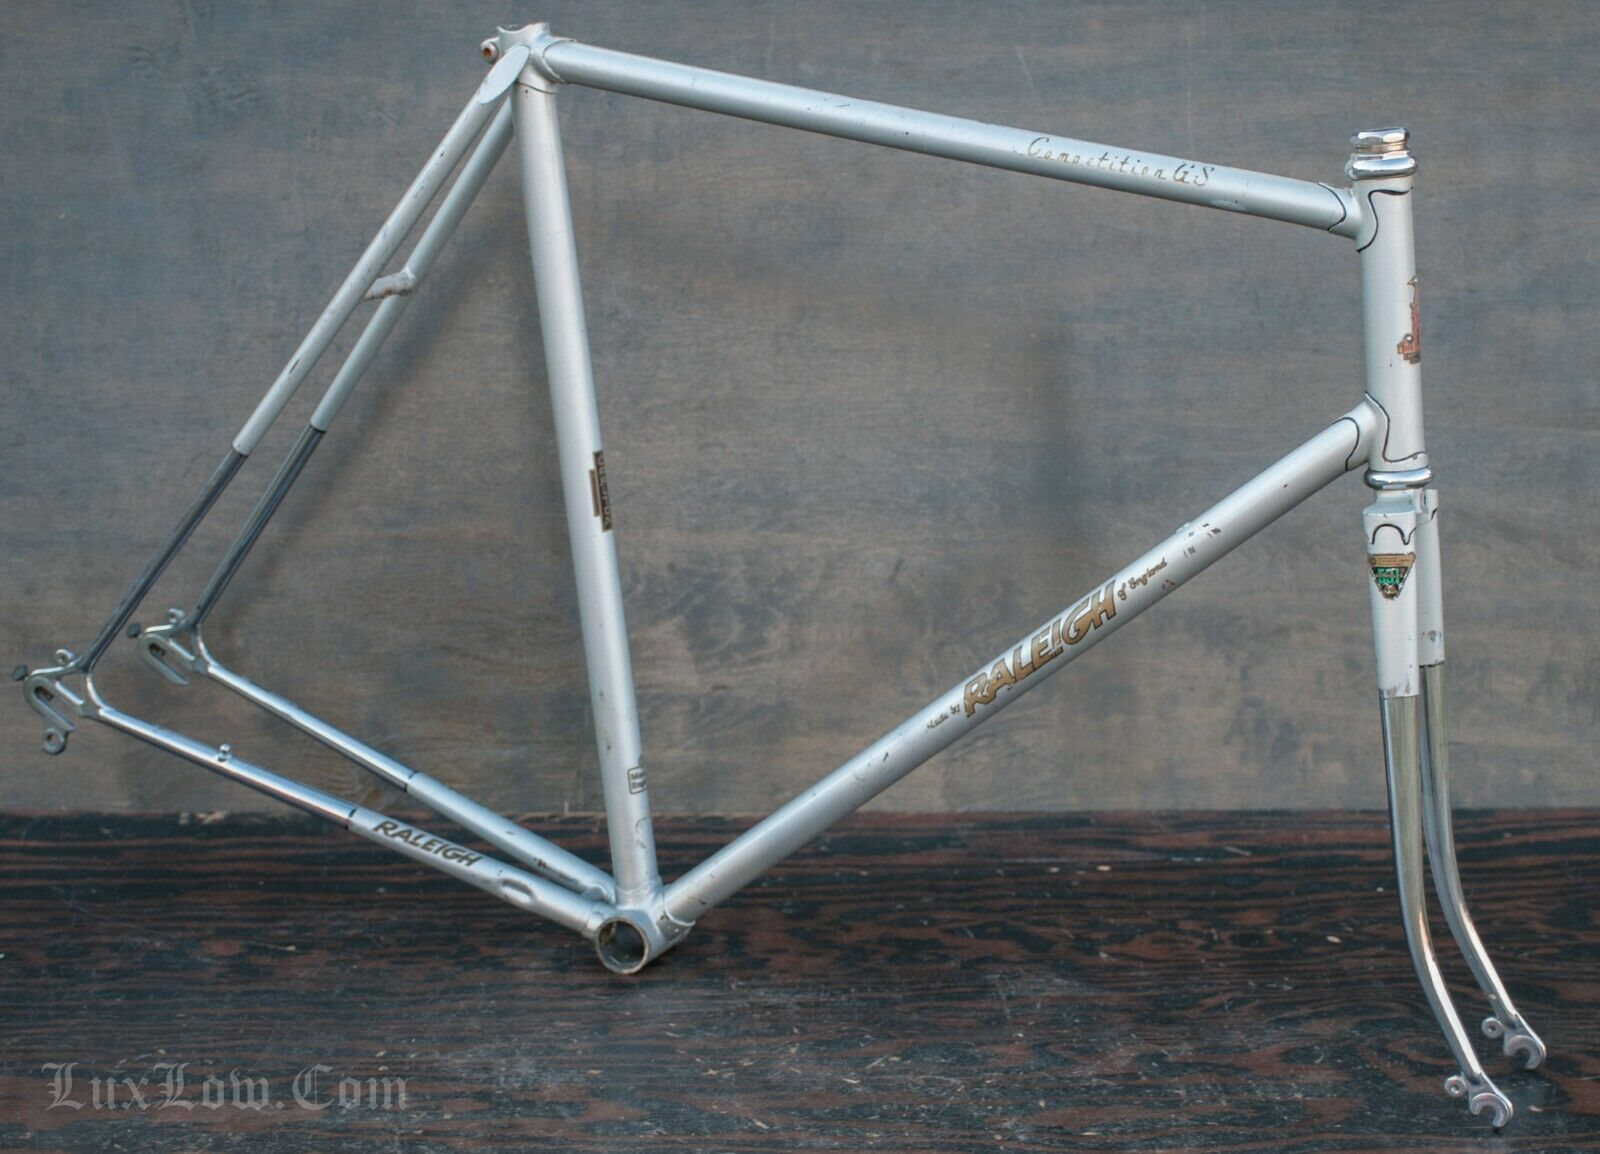 Vintage Raleigh CompetitionGS RoaCykel Frame Fork Carlton Bicycle Campagnolo 531